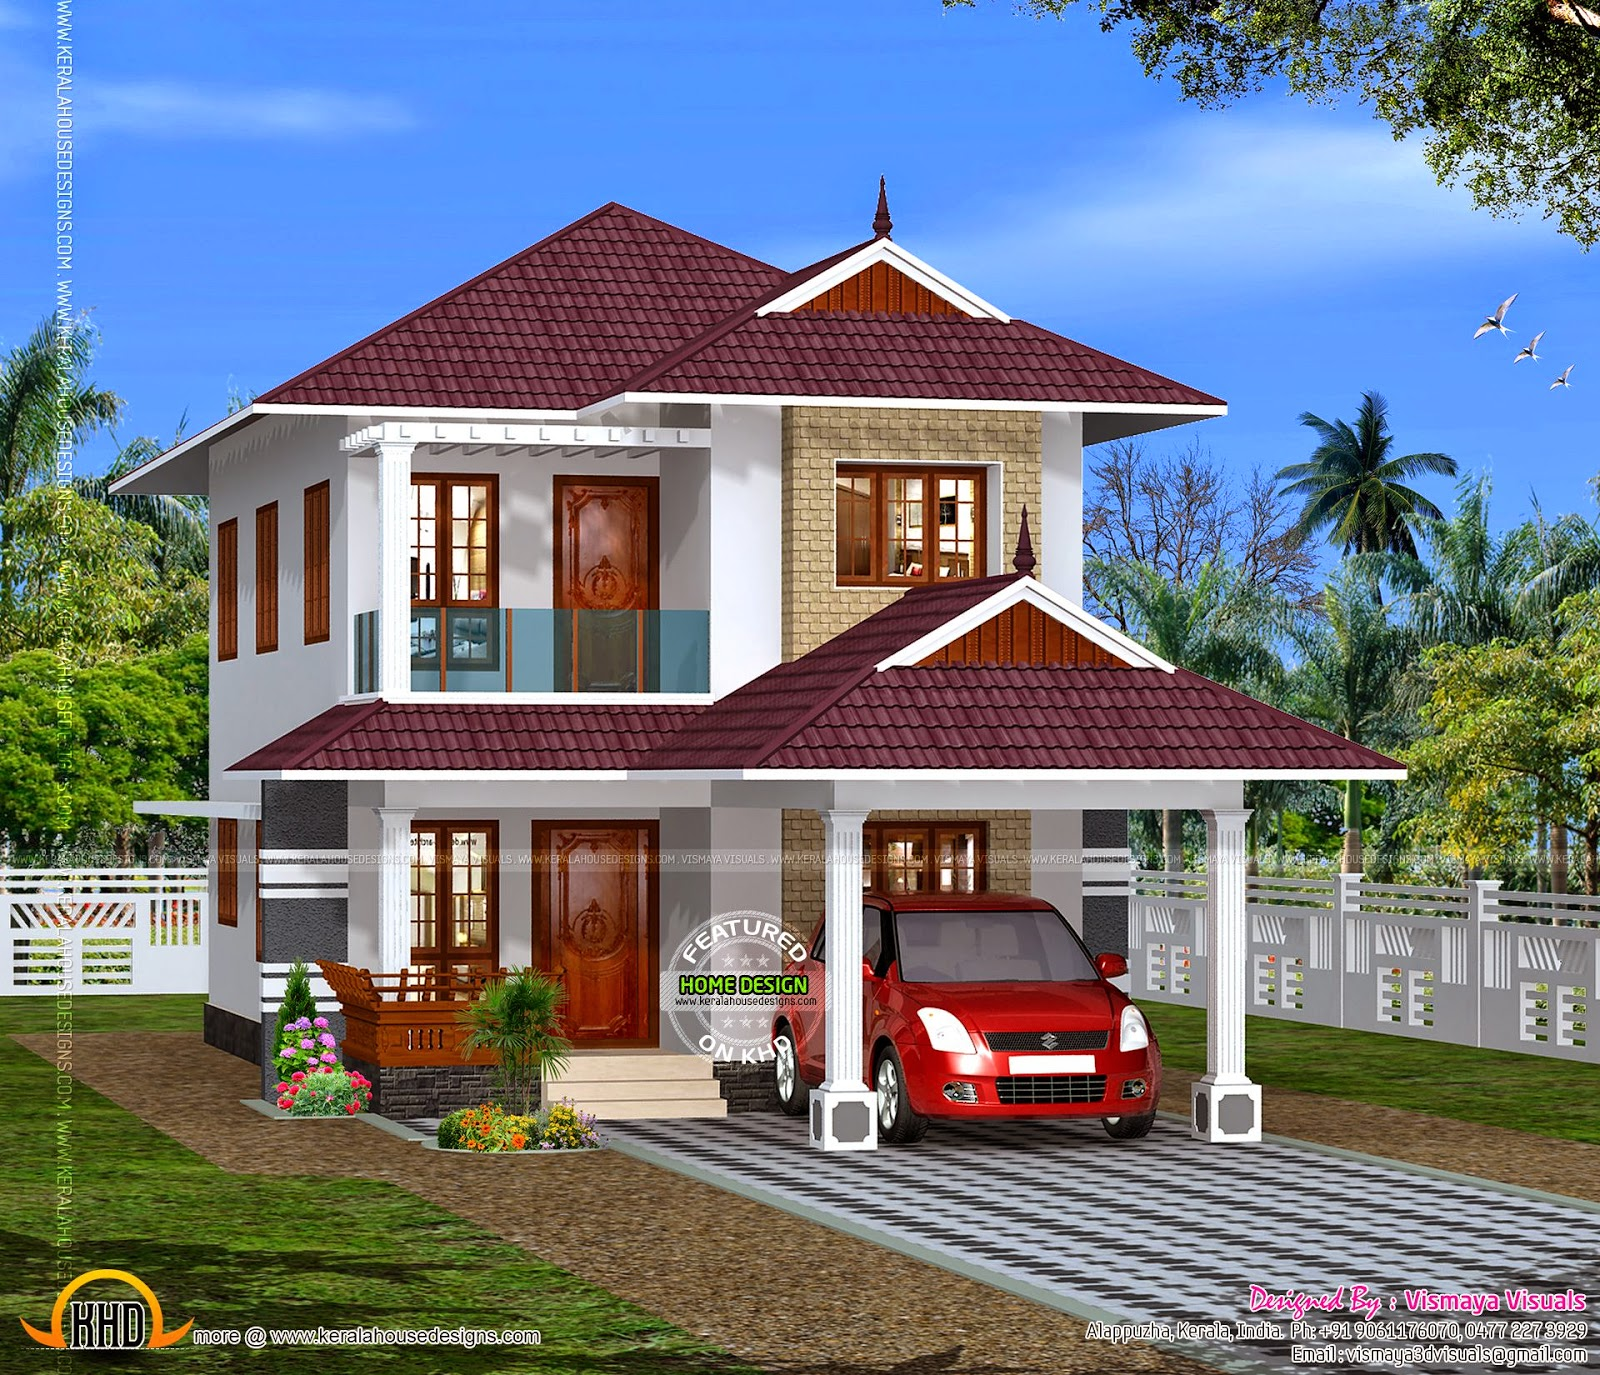 Clean box type house exterior keralahousedesigns for Home design sites